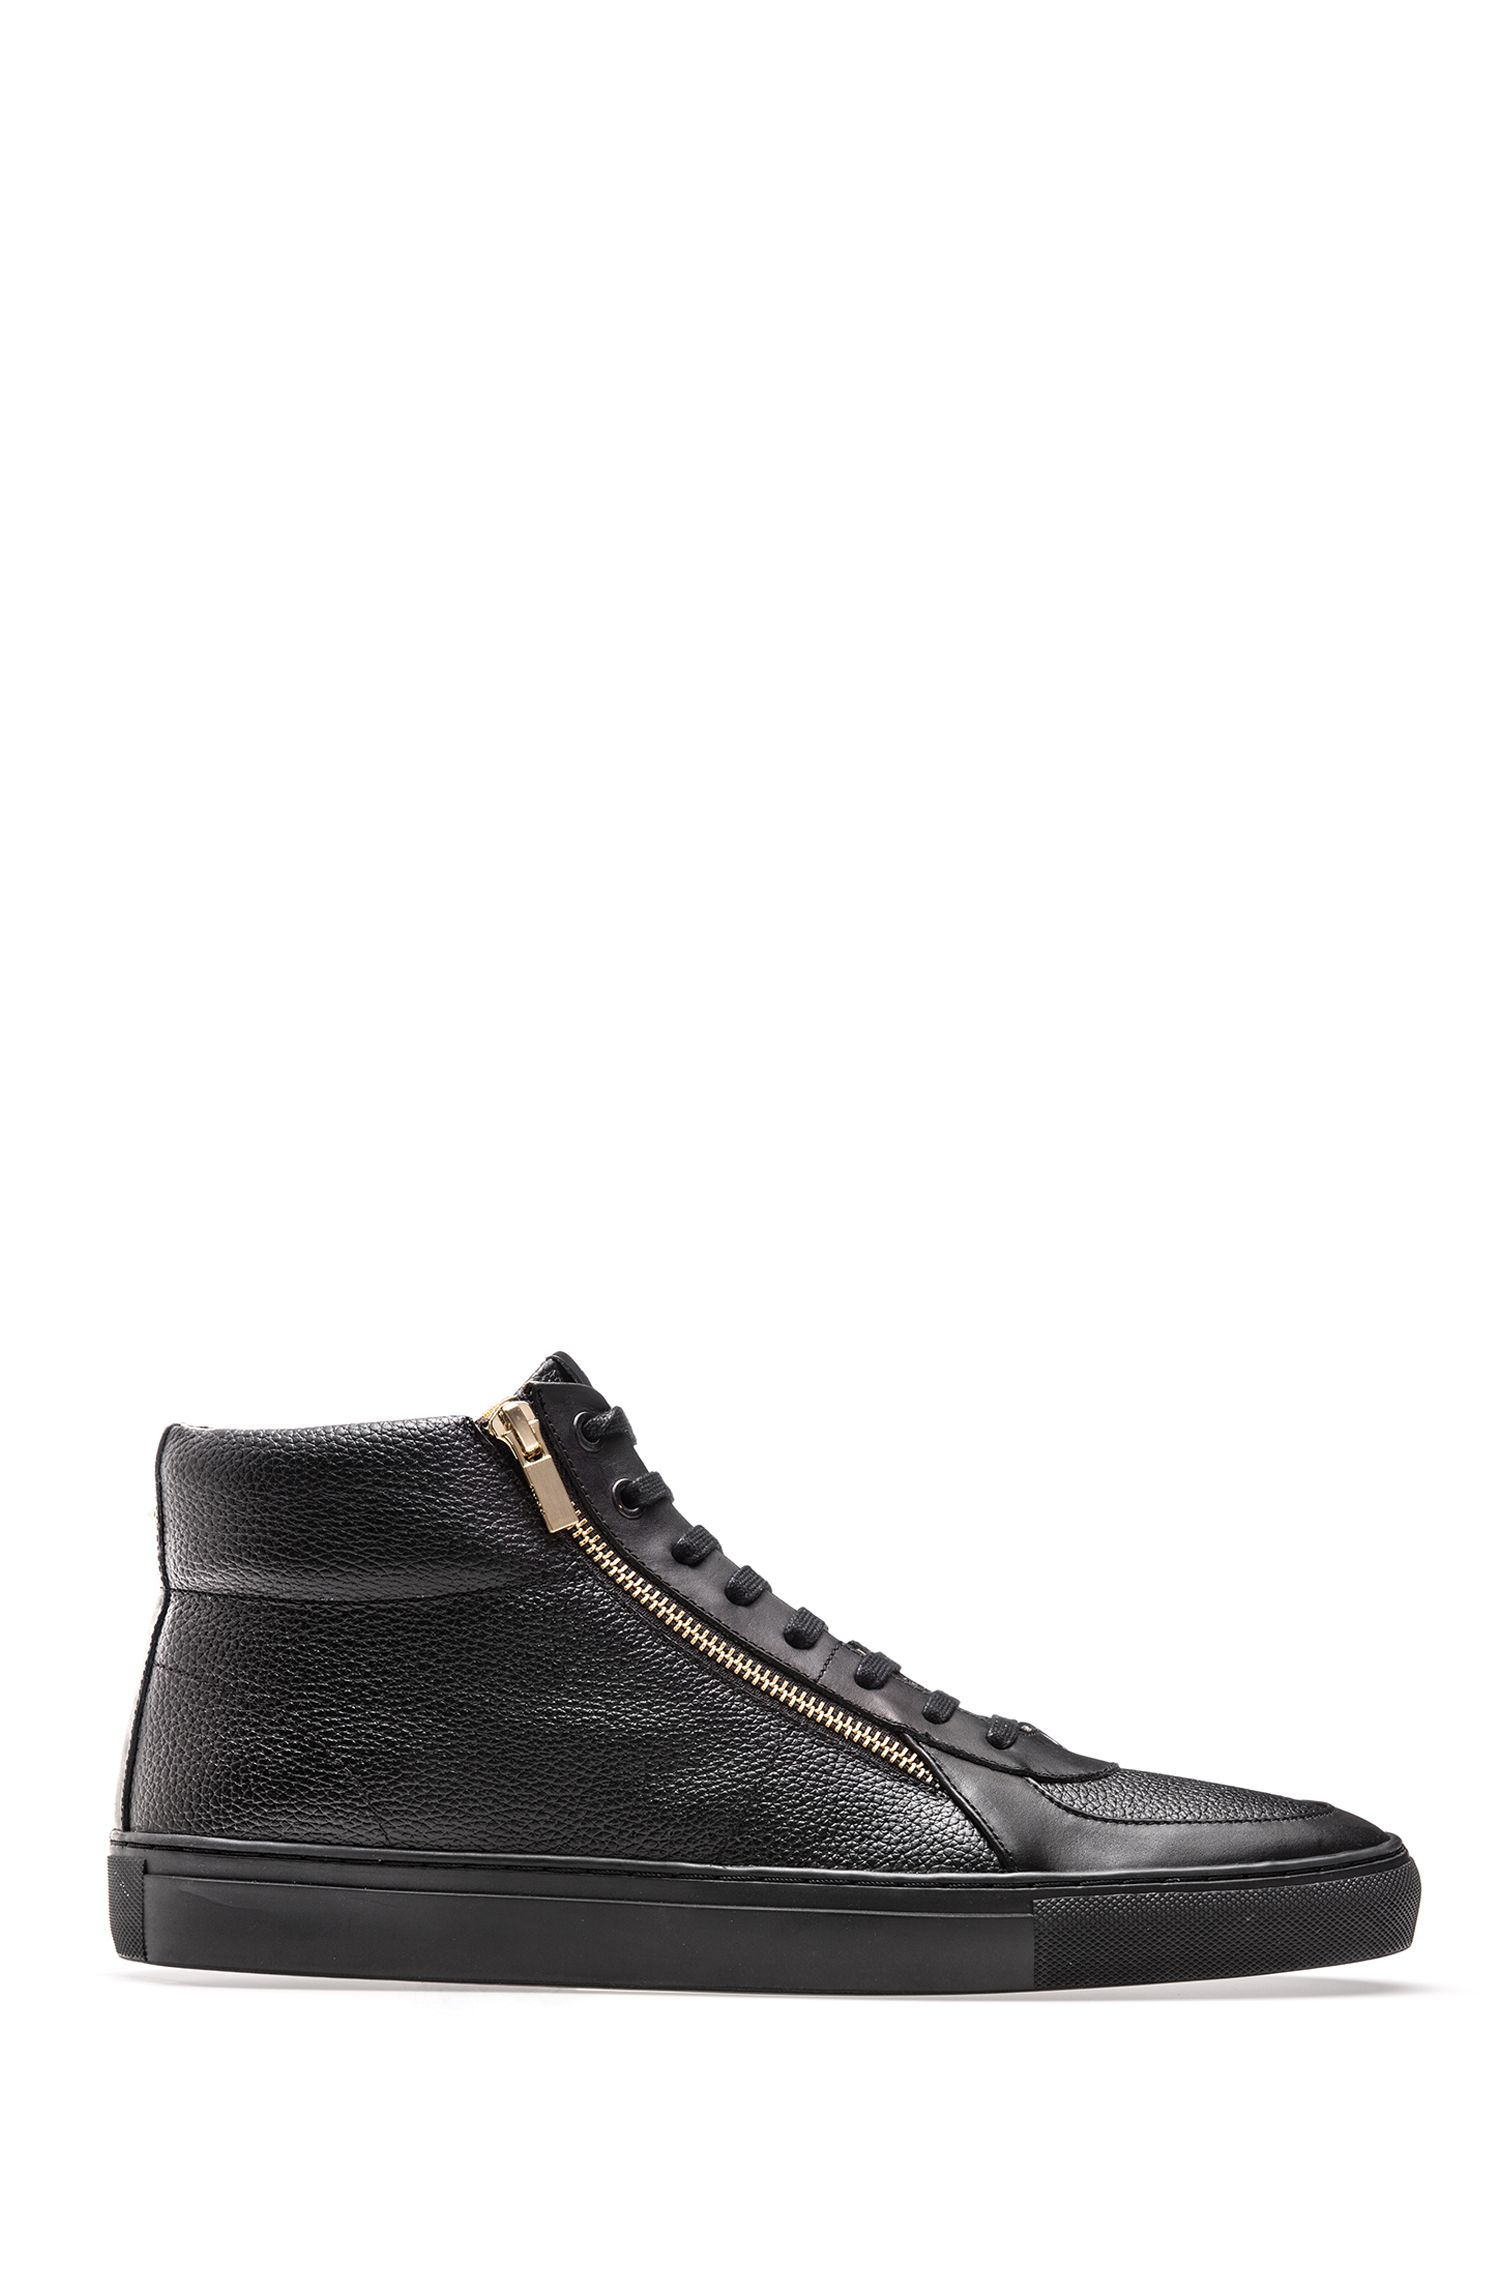 High-top trainers in tumbled and nappa leather with double zip detail